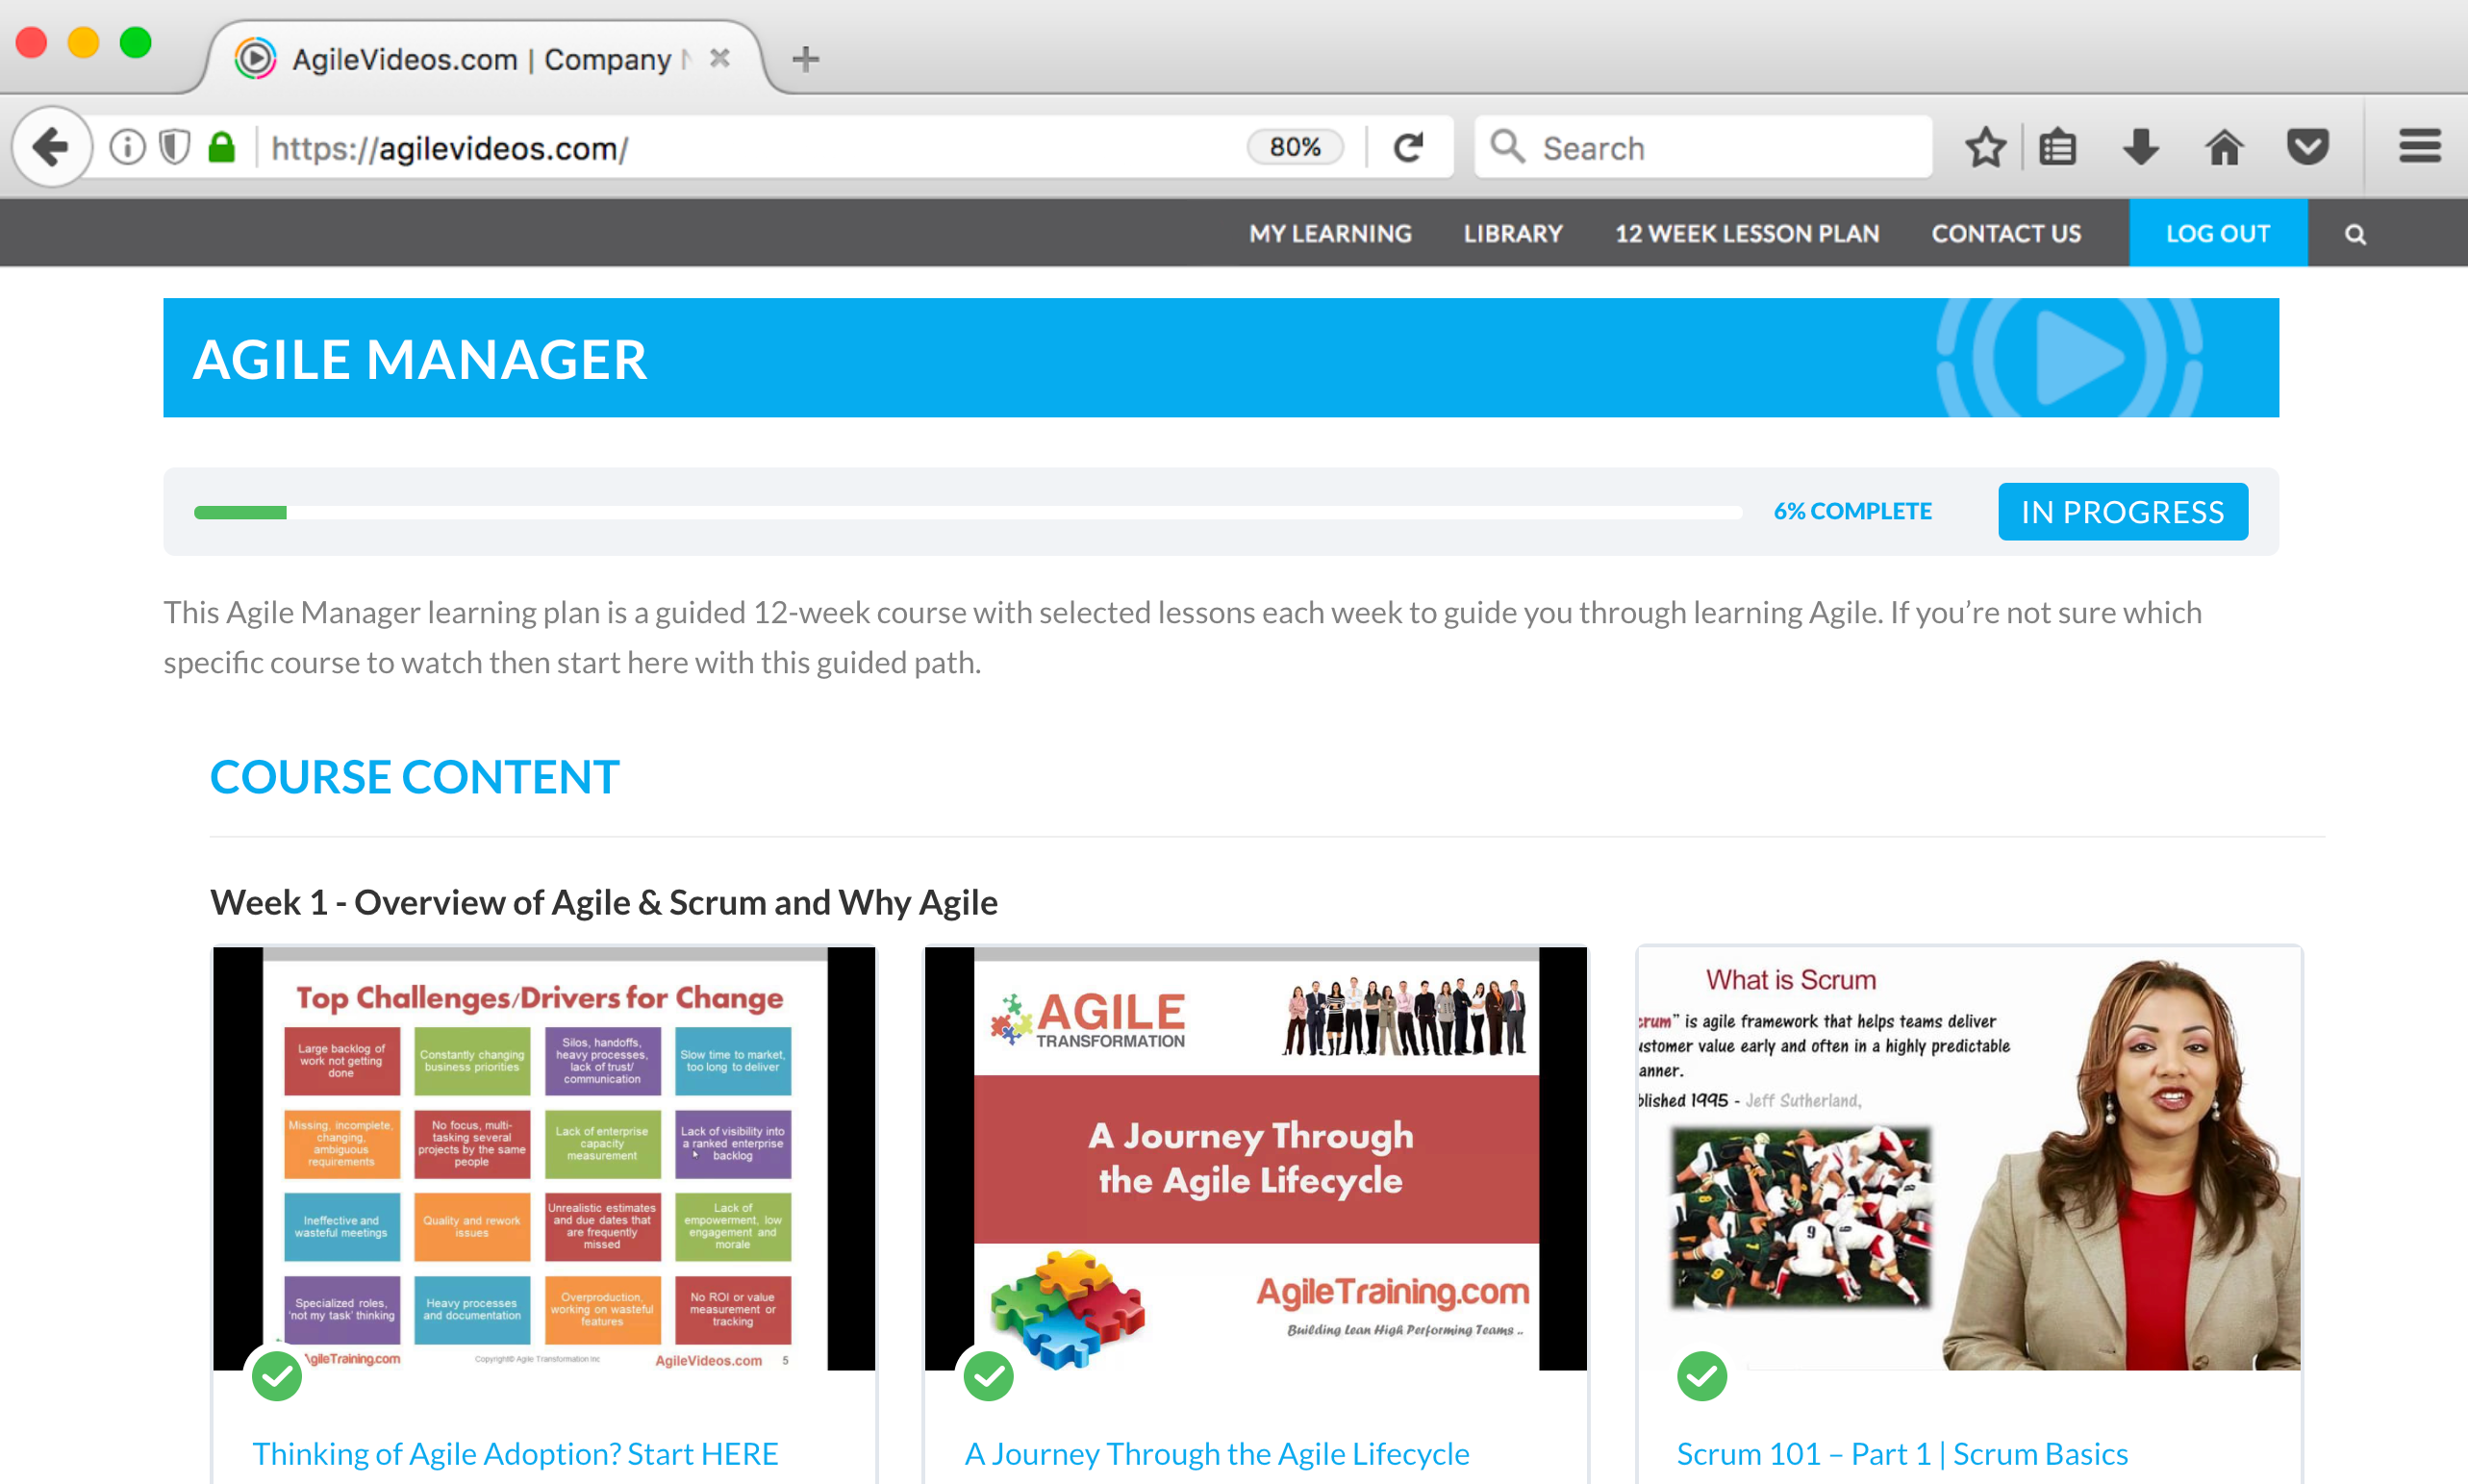 agile-manager-learning